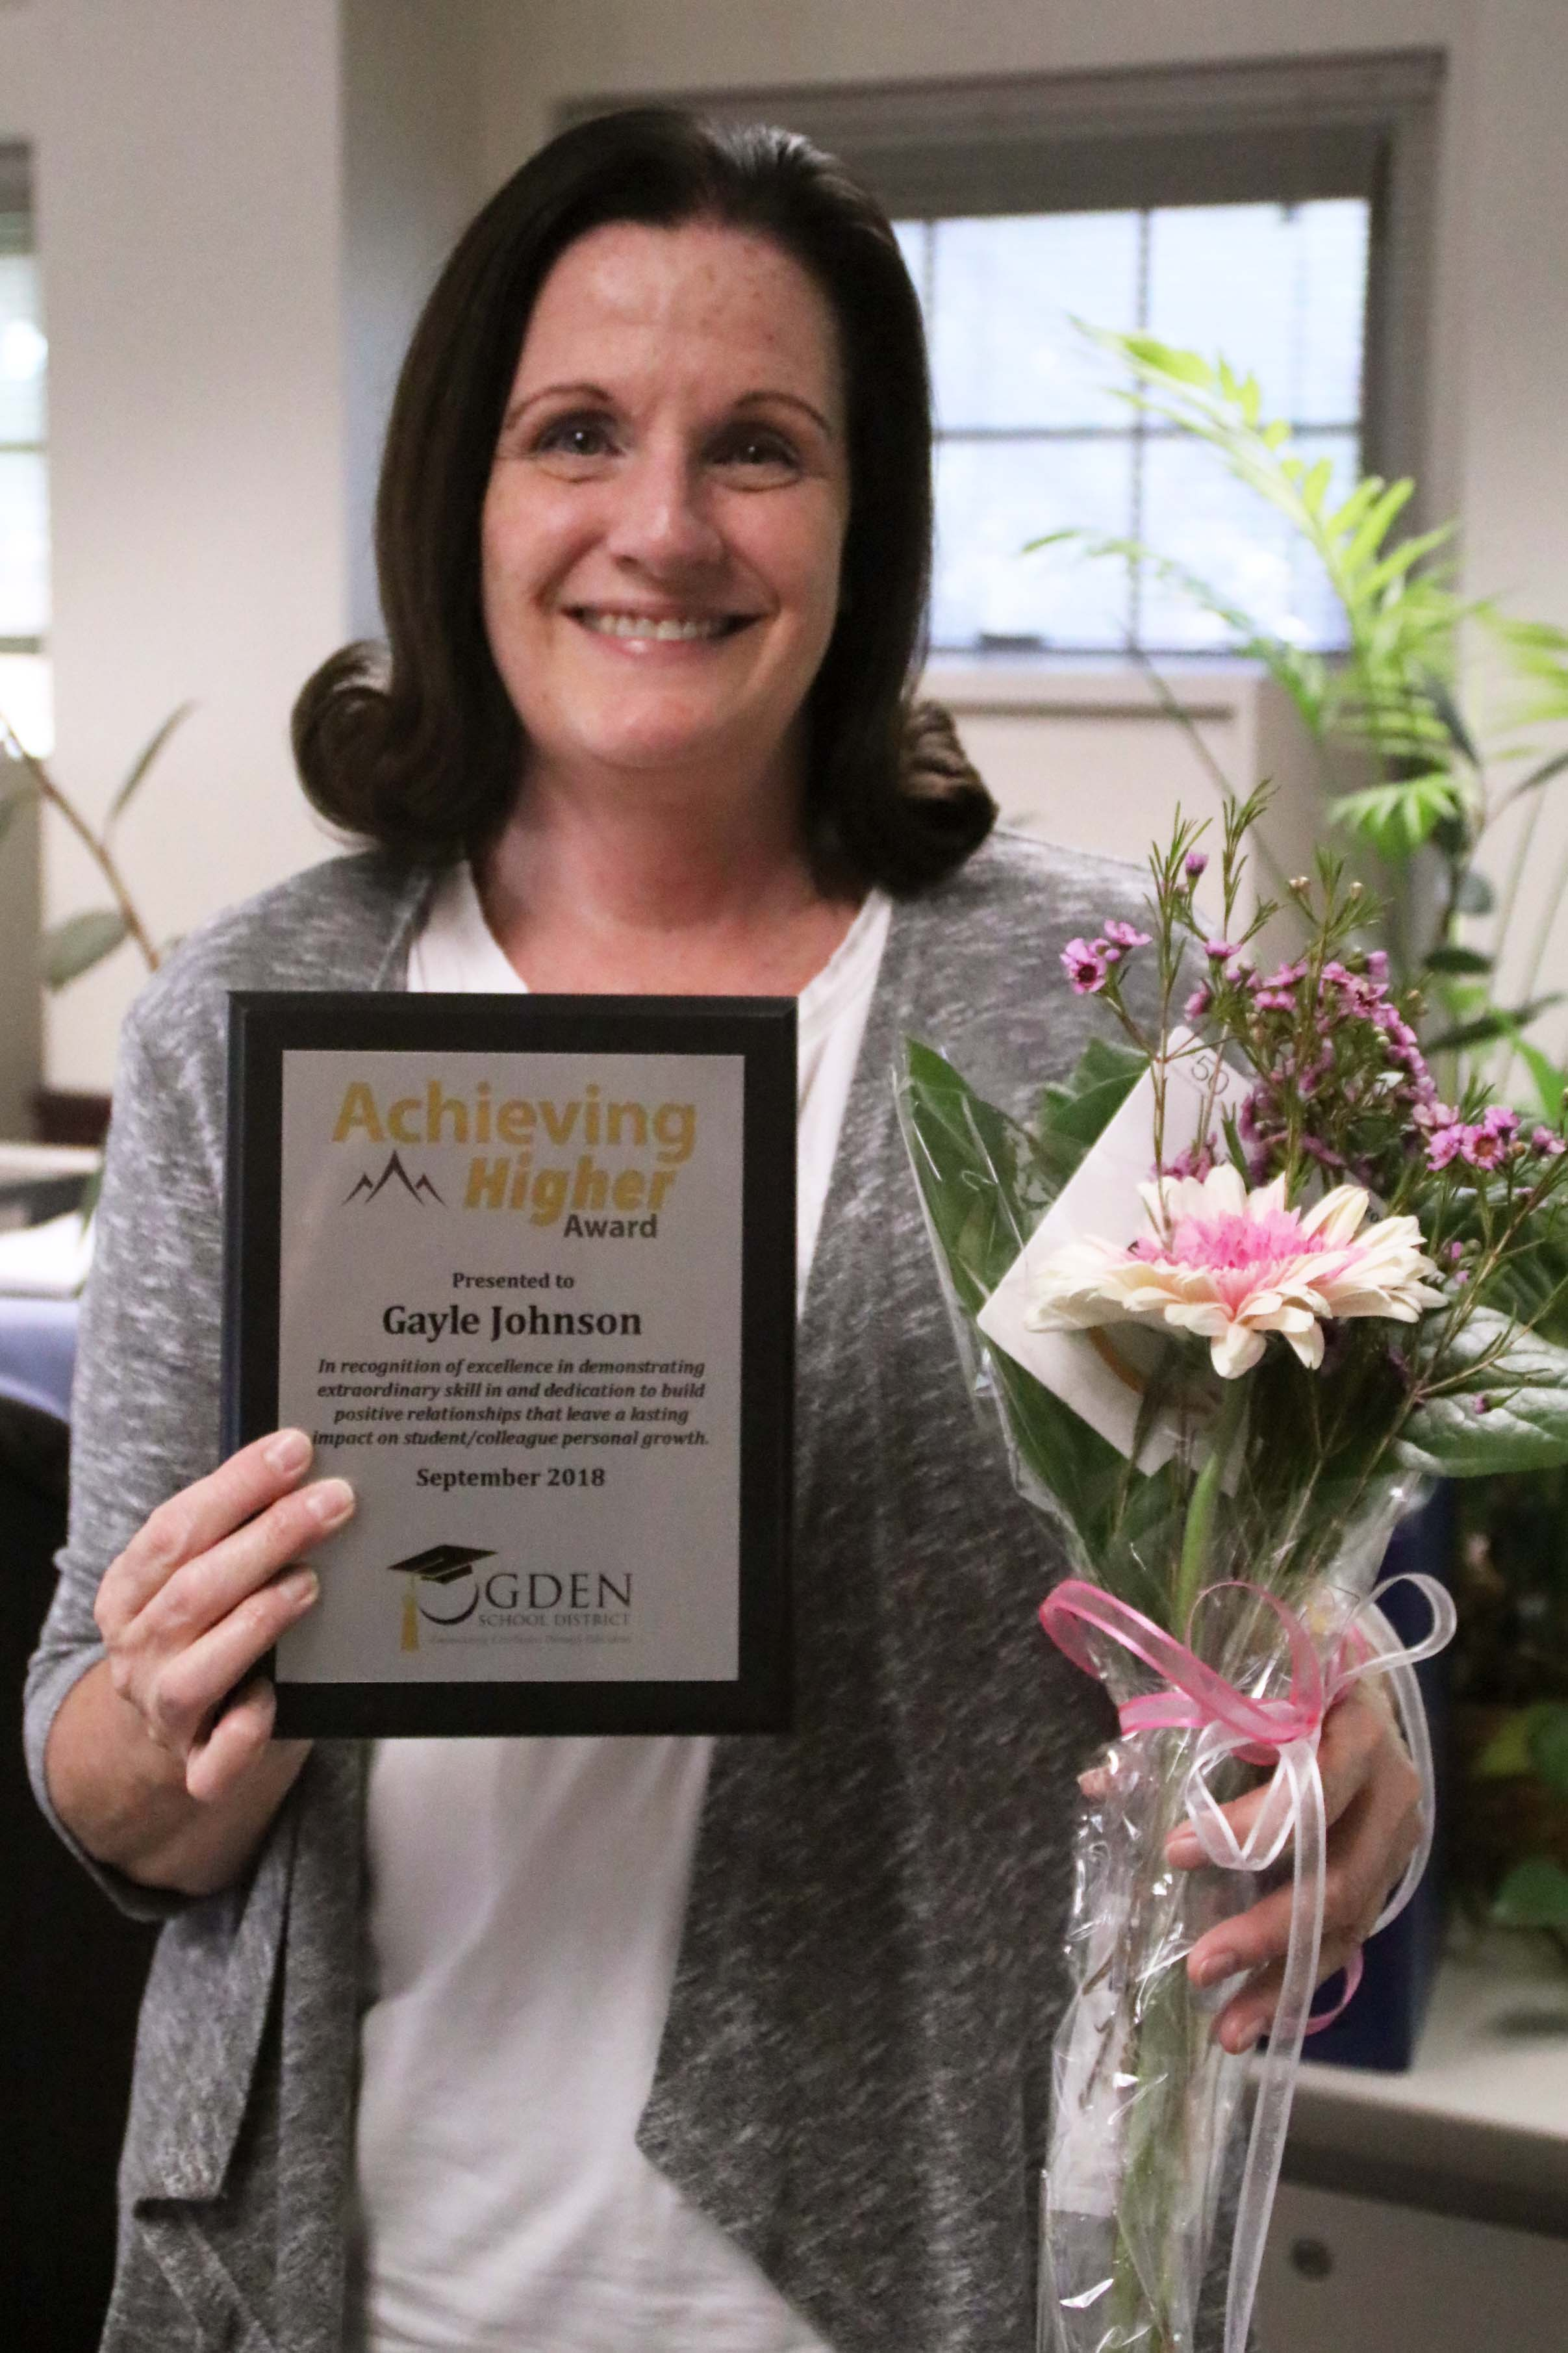 Congratulations to Gayle Johnson for being honored with the September Achieving Higher